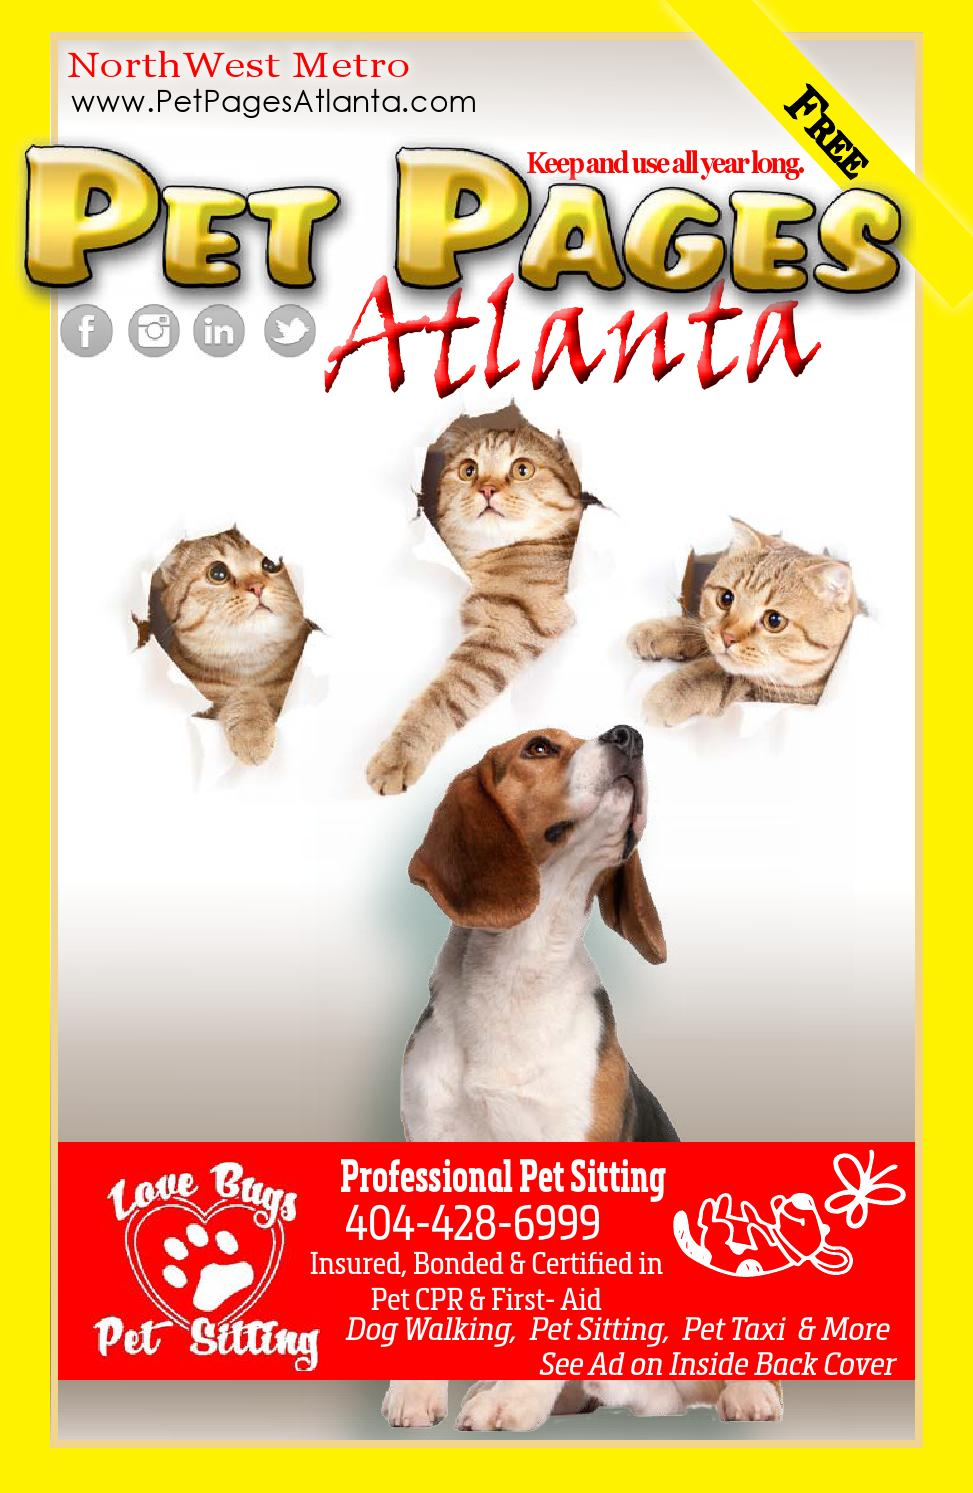 West Metro Atlanta Pet Pages 2015 by Pet Pages Atlanta - issuu